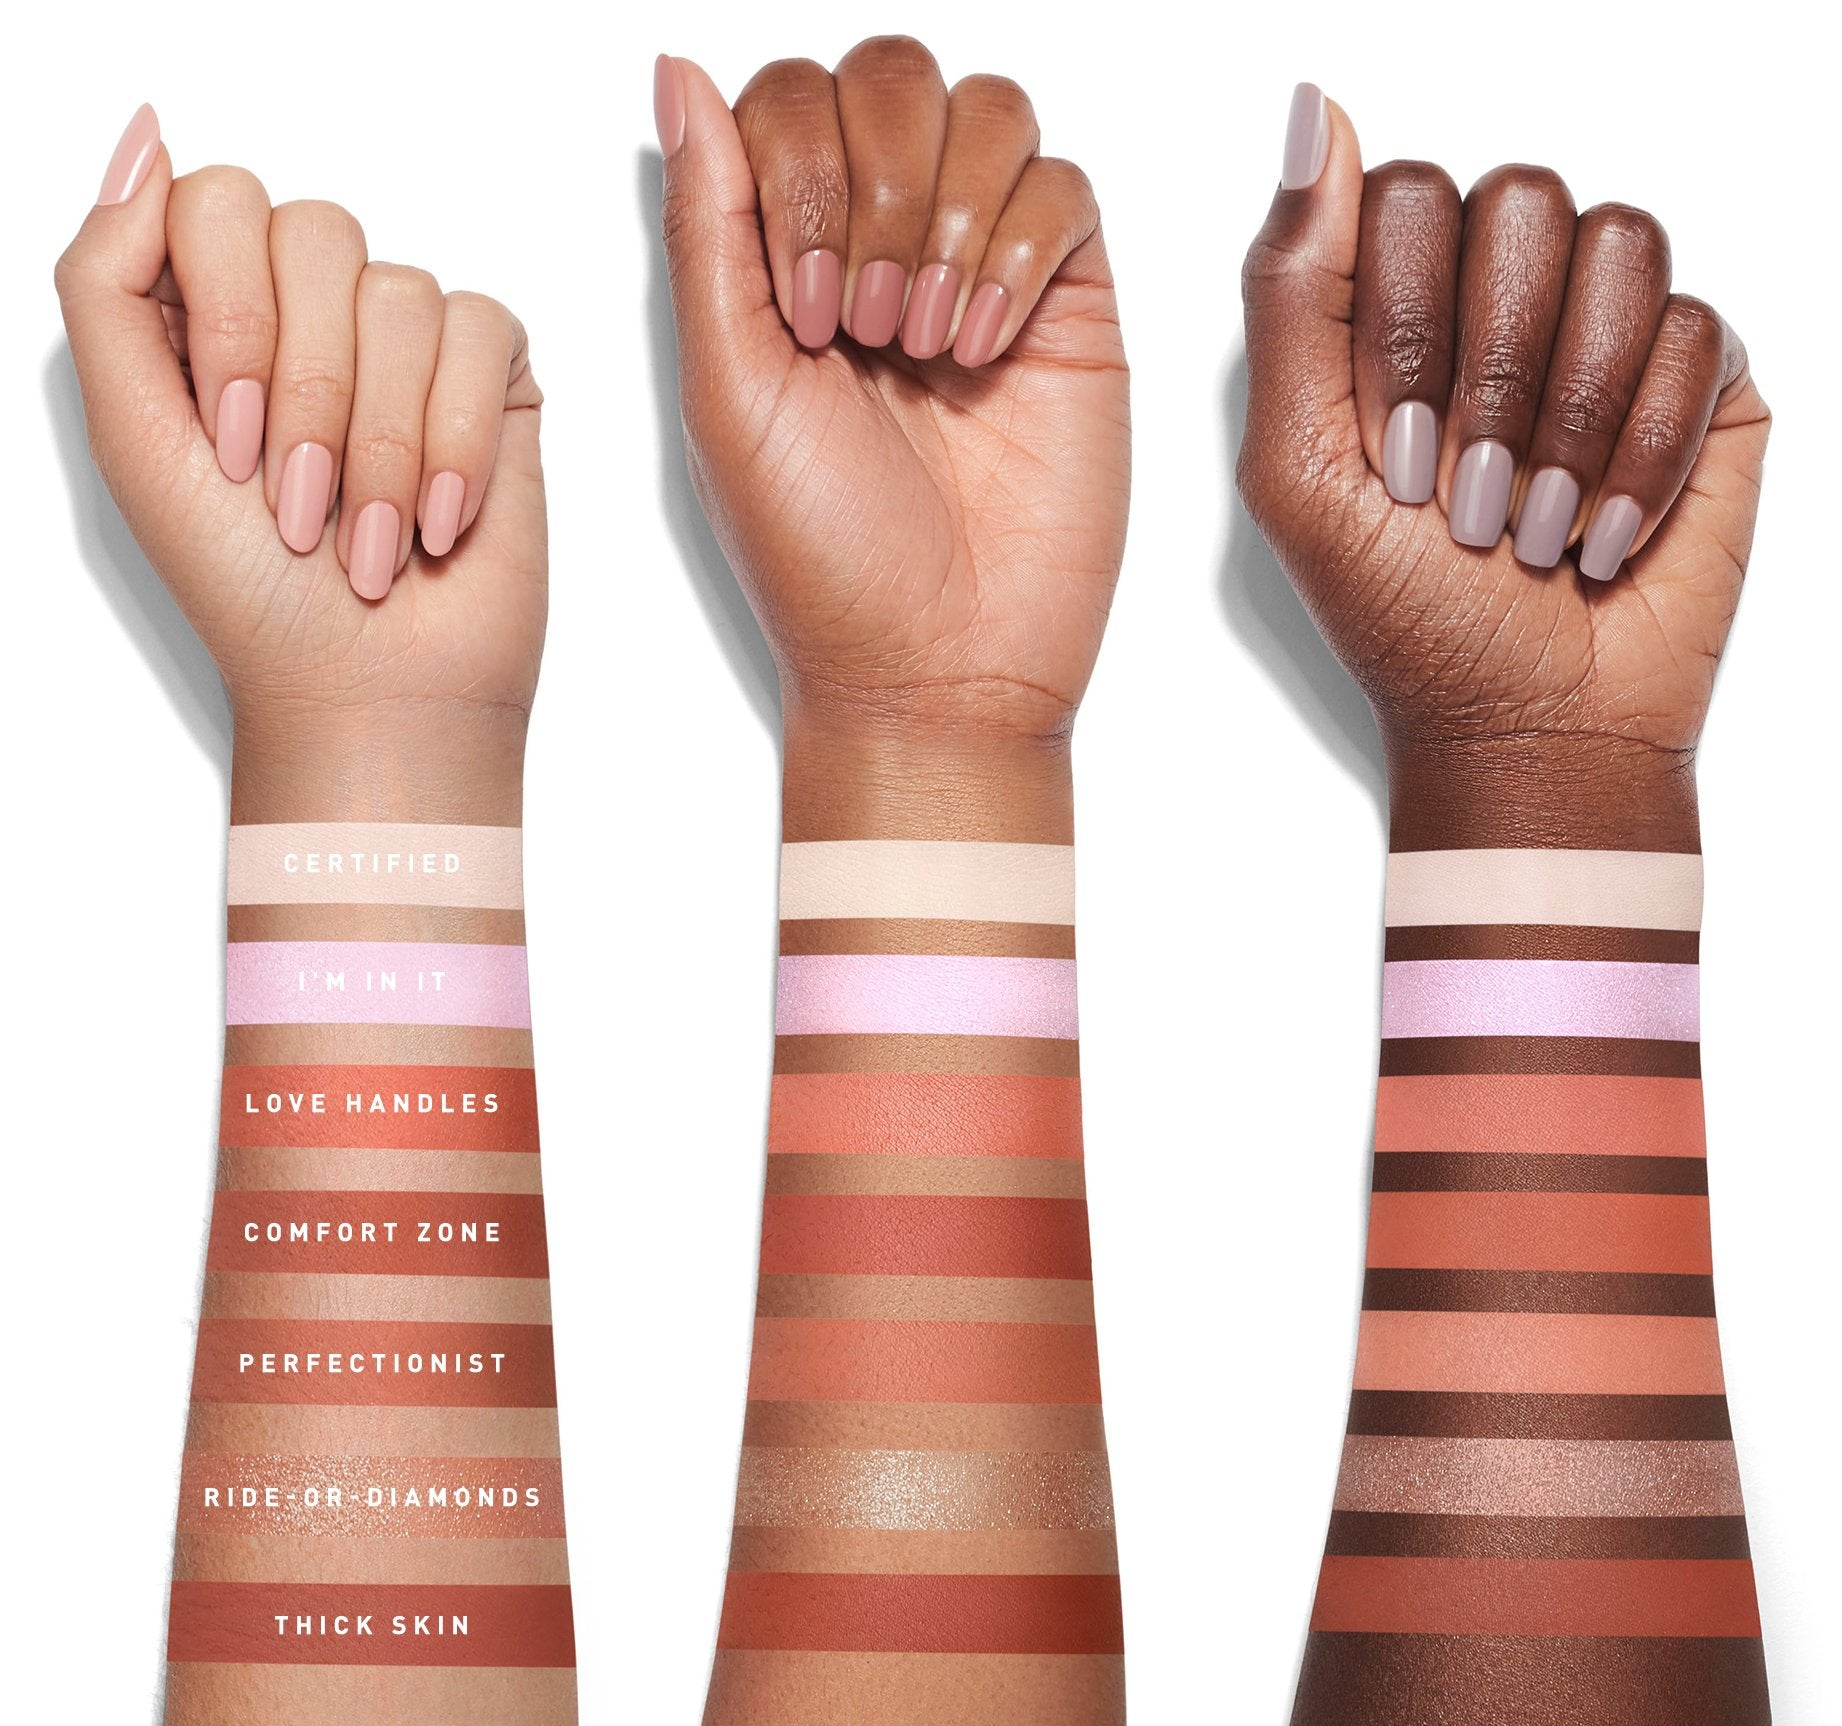 JACLYN HILL PALETTE VOLUME II ARM SWATCHES, view larger image